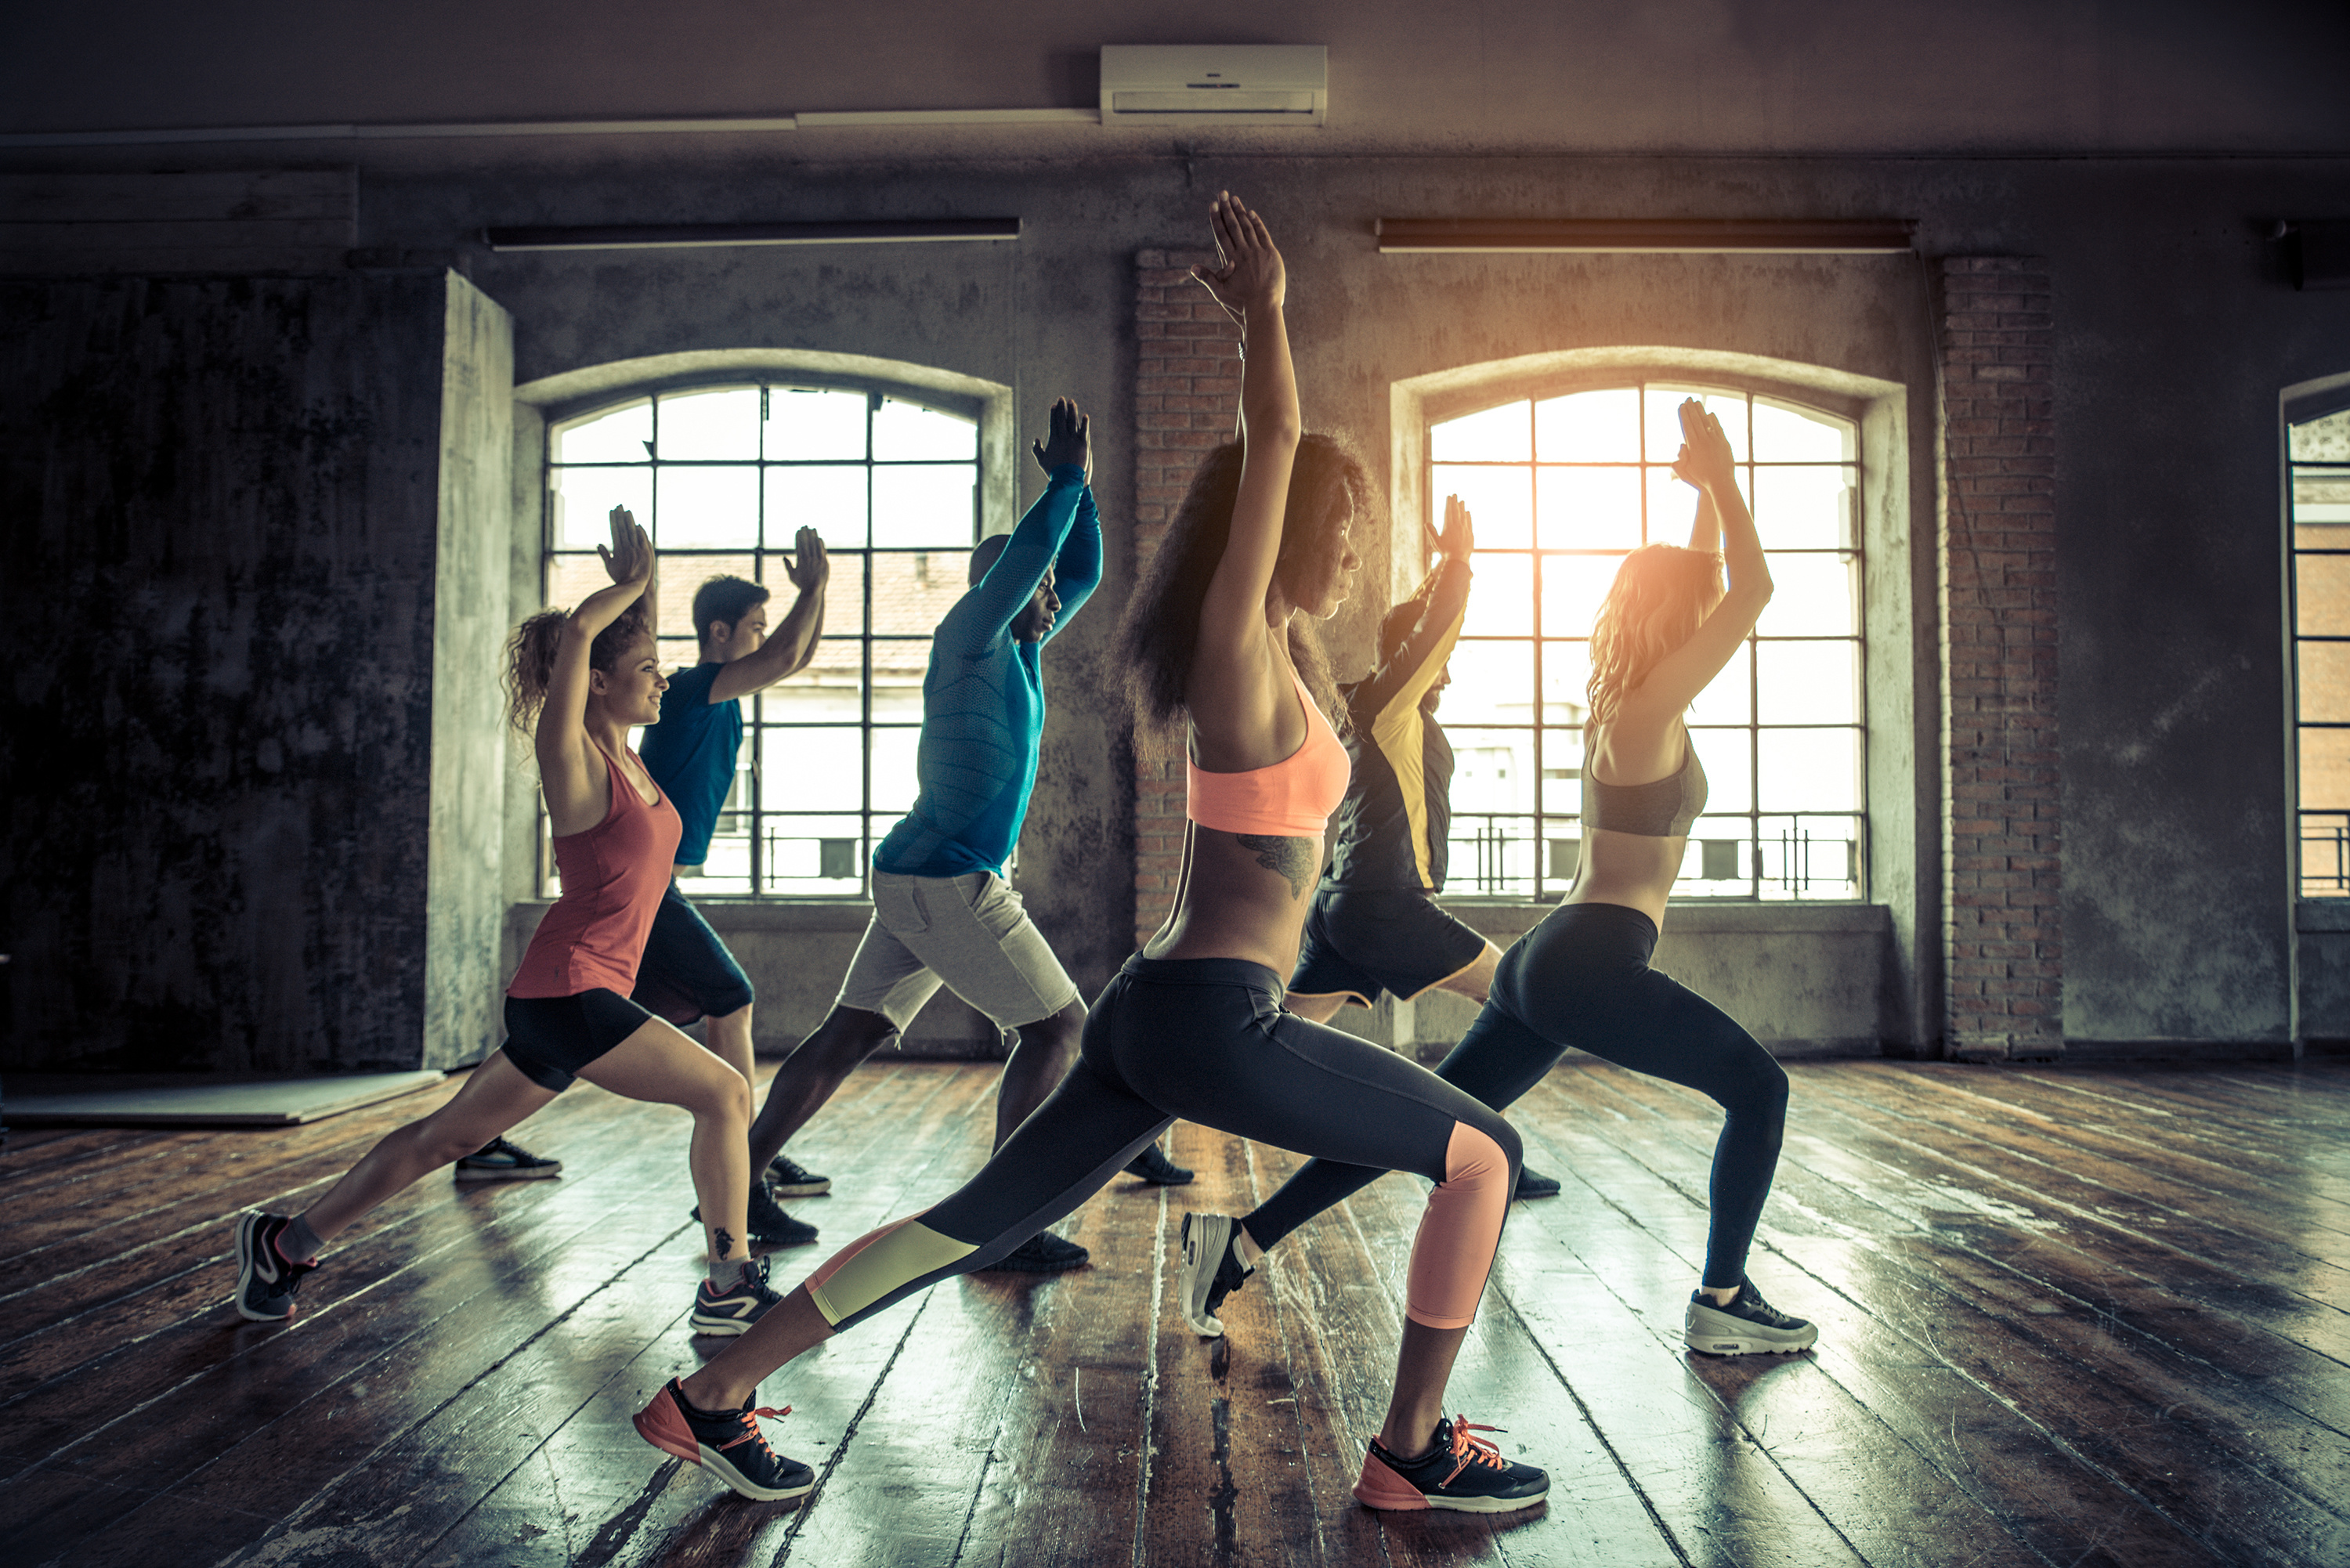 Yoga practicing group